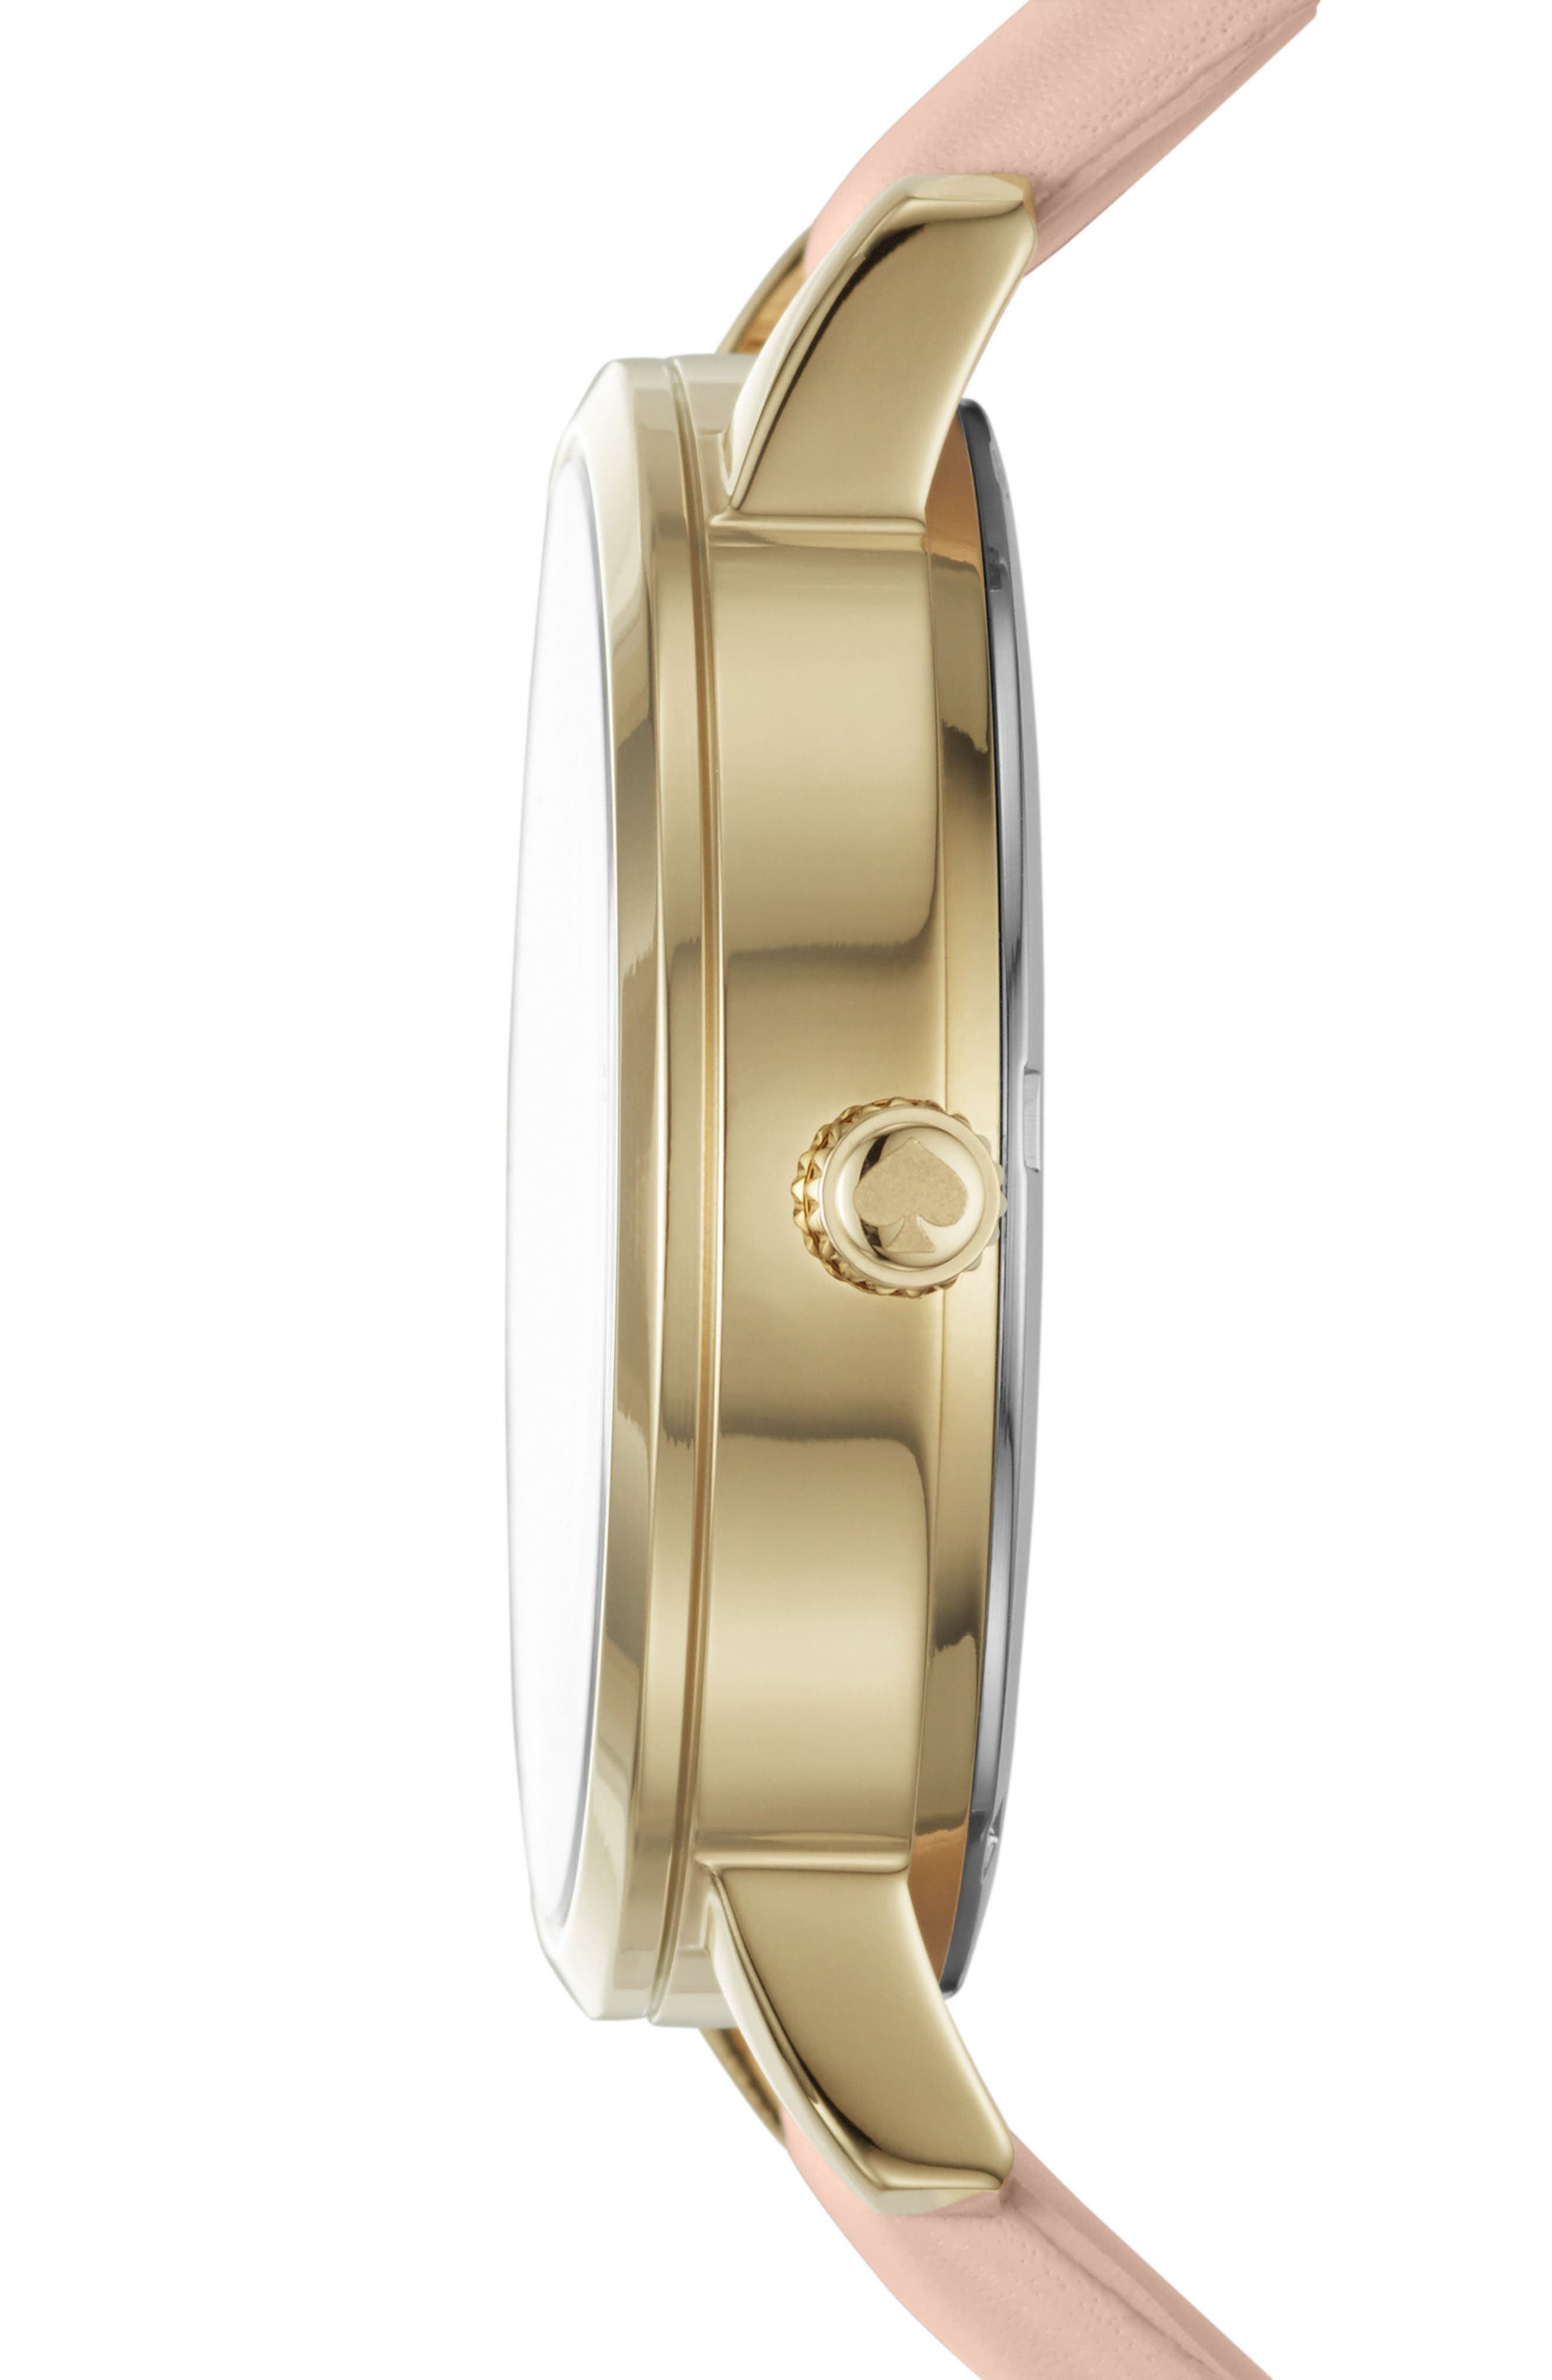 grand metro antoine leather strap watch, 38mm,                             Alternate thumbnail 2, color,                             NUDE/ CREAM/ GOLD